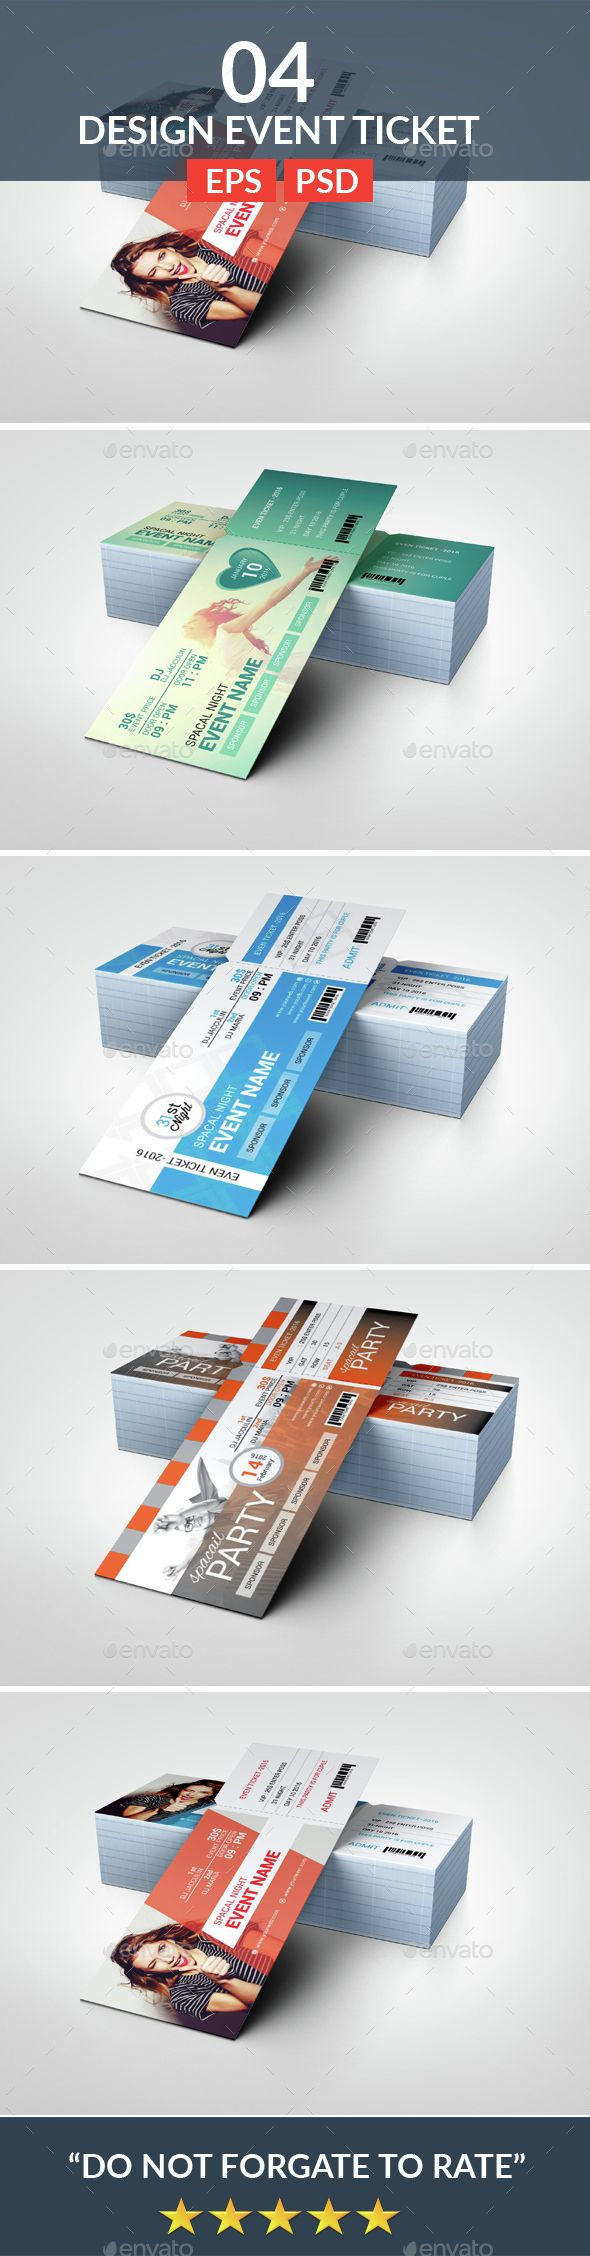 #Event #Ticket #Bundle - #Cards & #Invites #Print #Templates Download here: https://graphicriver.net/item/event-ticket-bundle/15195347?ref=alena994